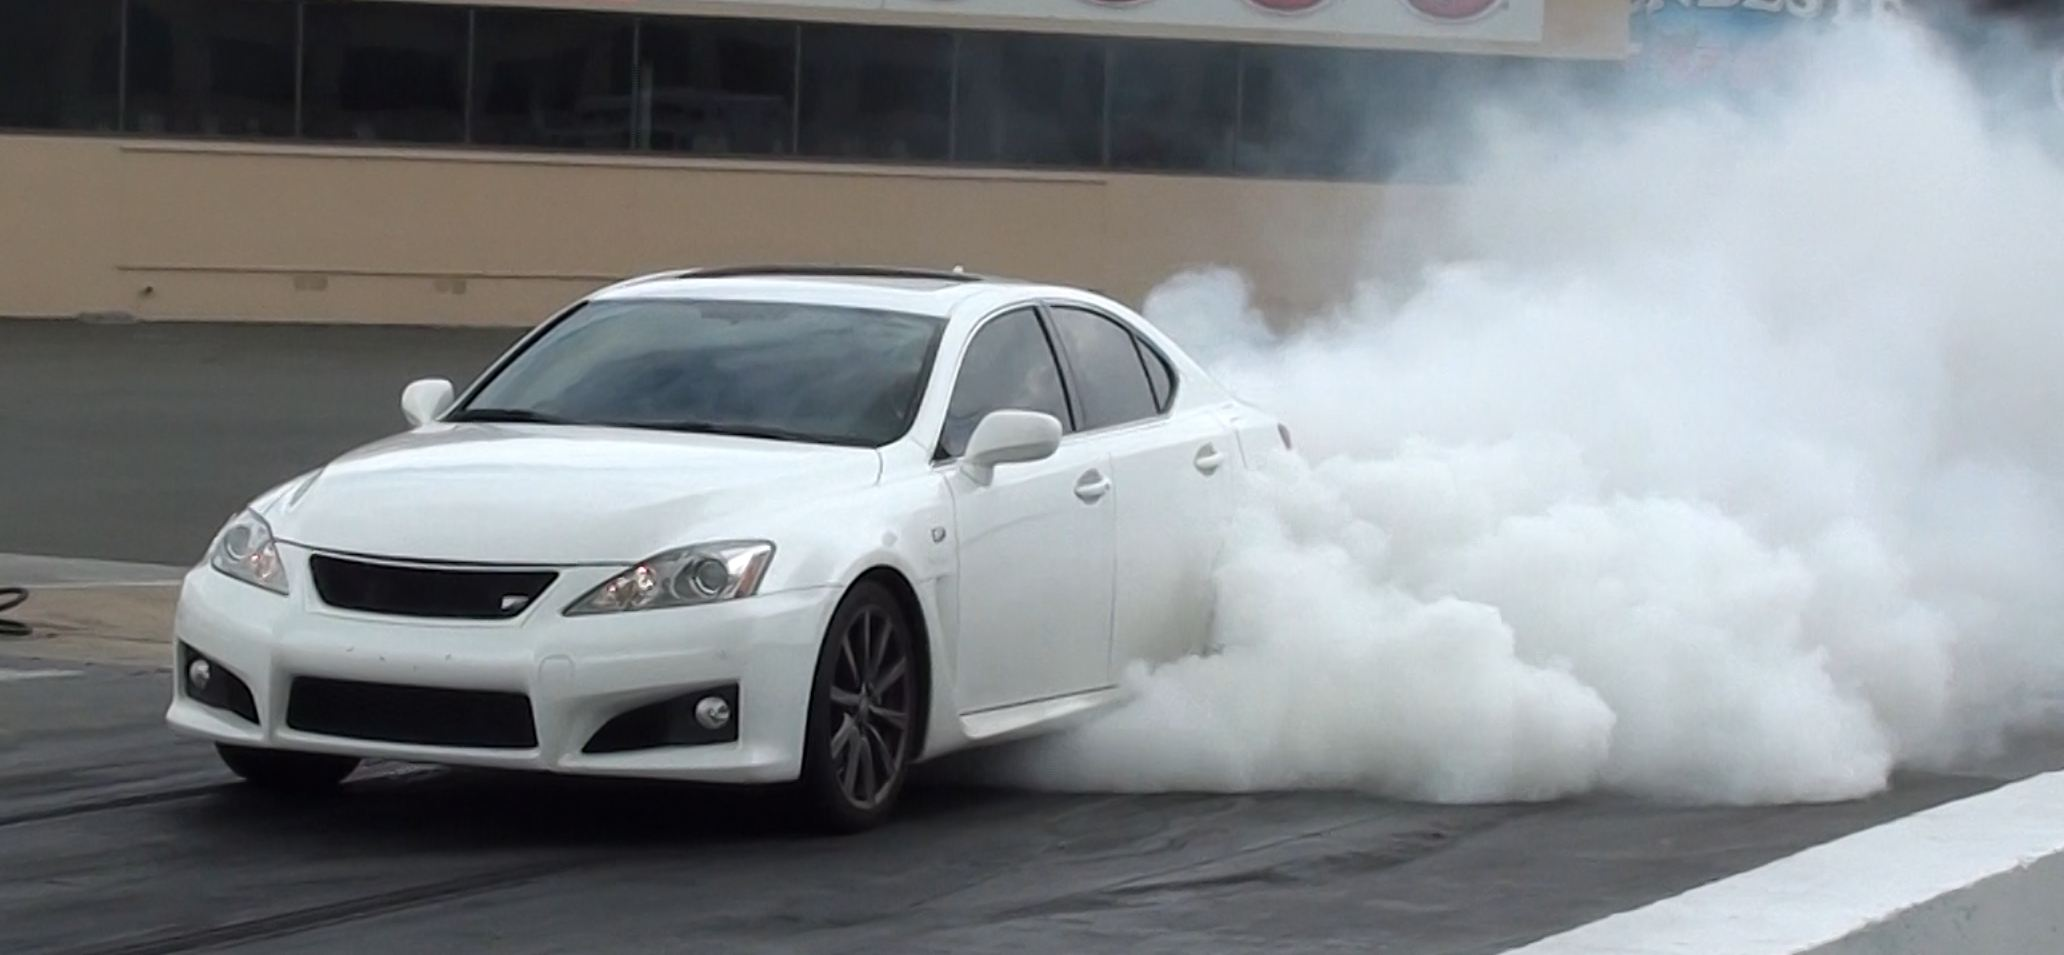 2008 StarFire Pearl Lexus IS-F Nitrous picture, mods, upgrades